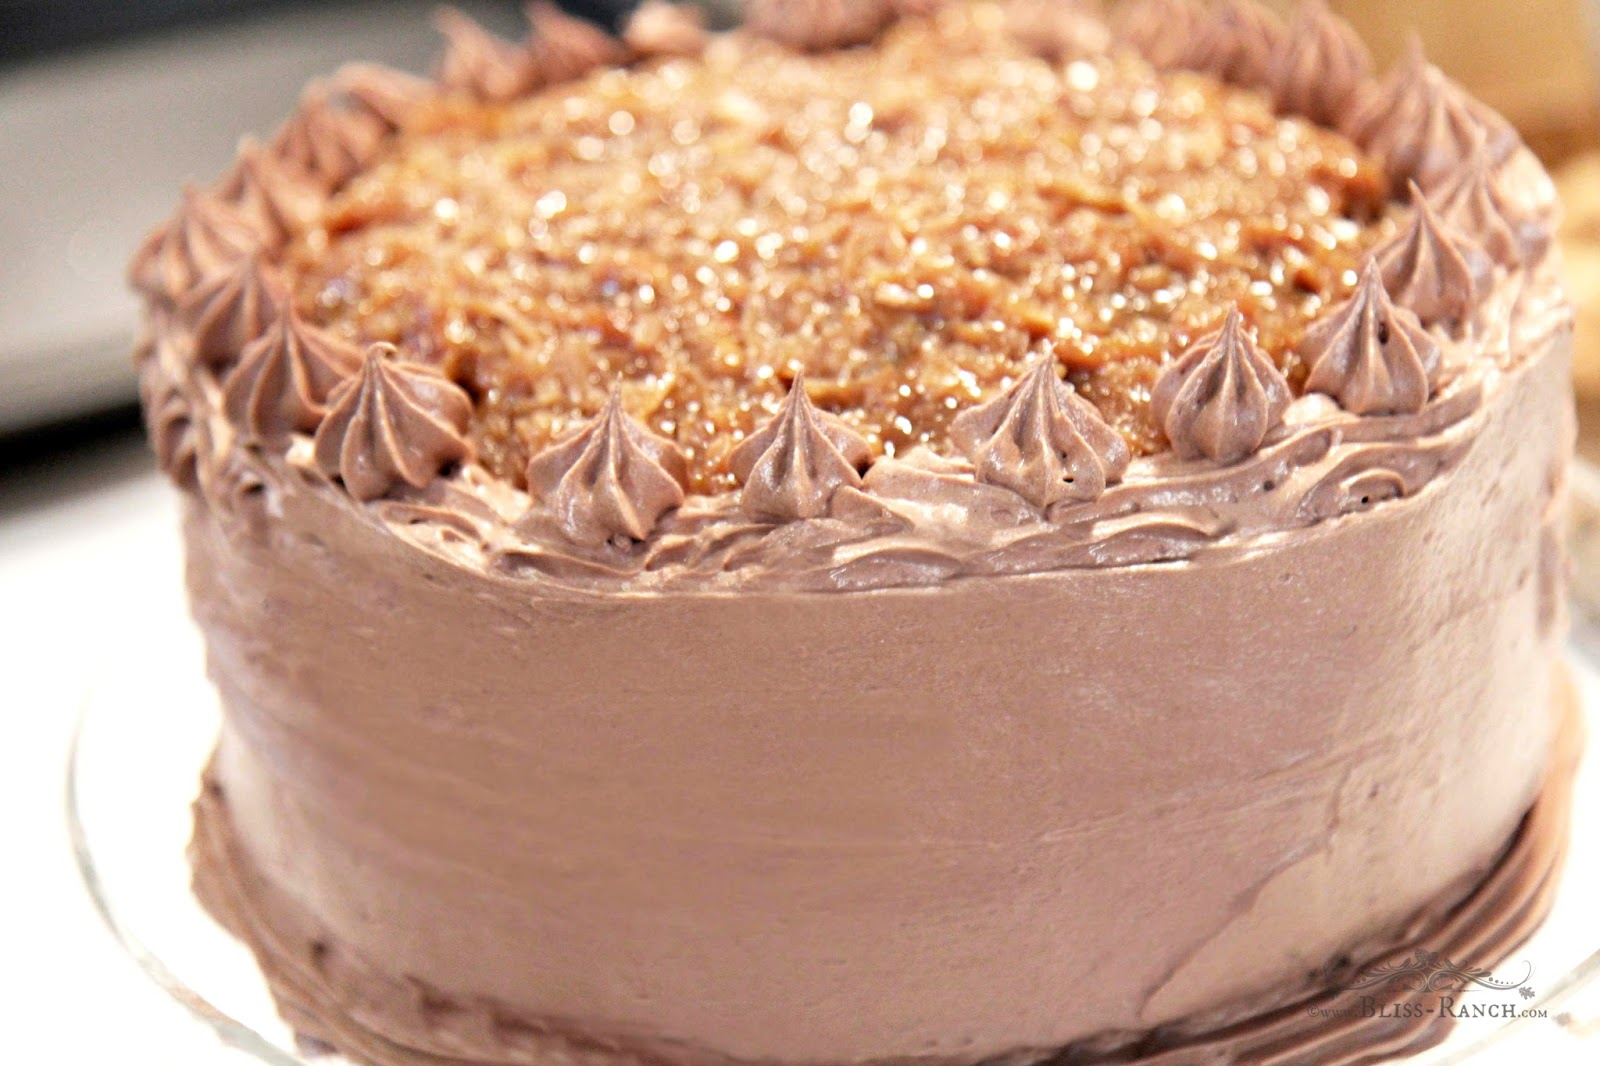 German Chocolate Cake Bliss-ranch.com